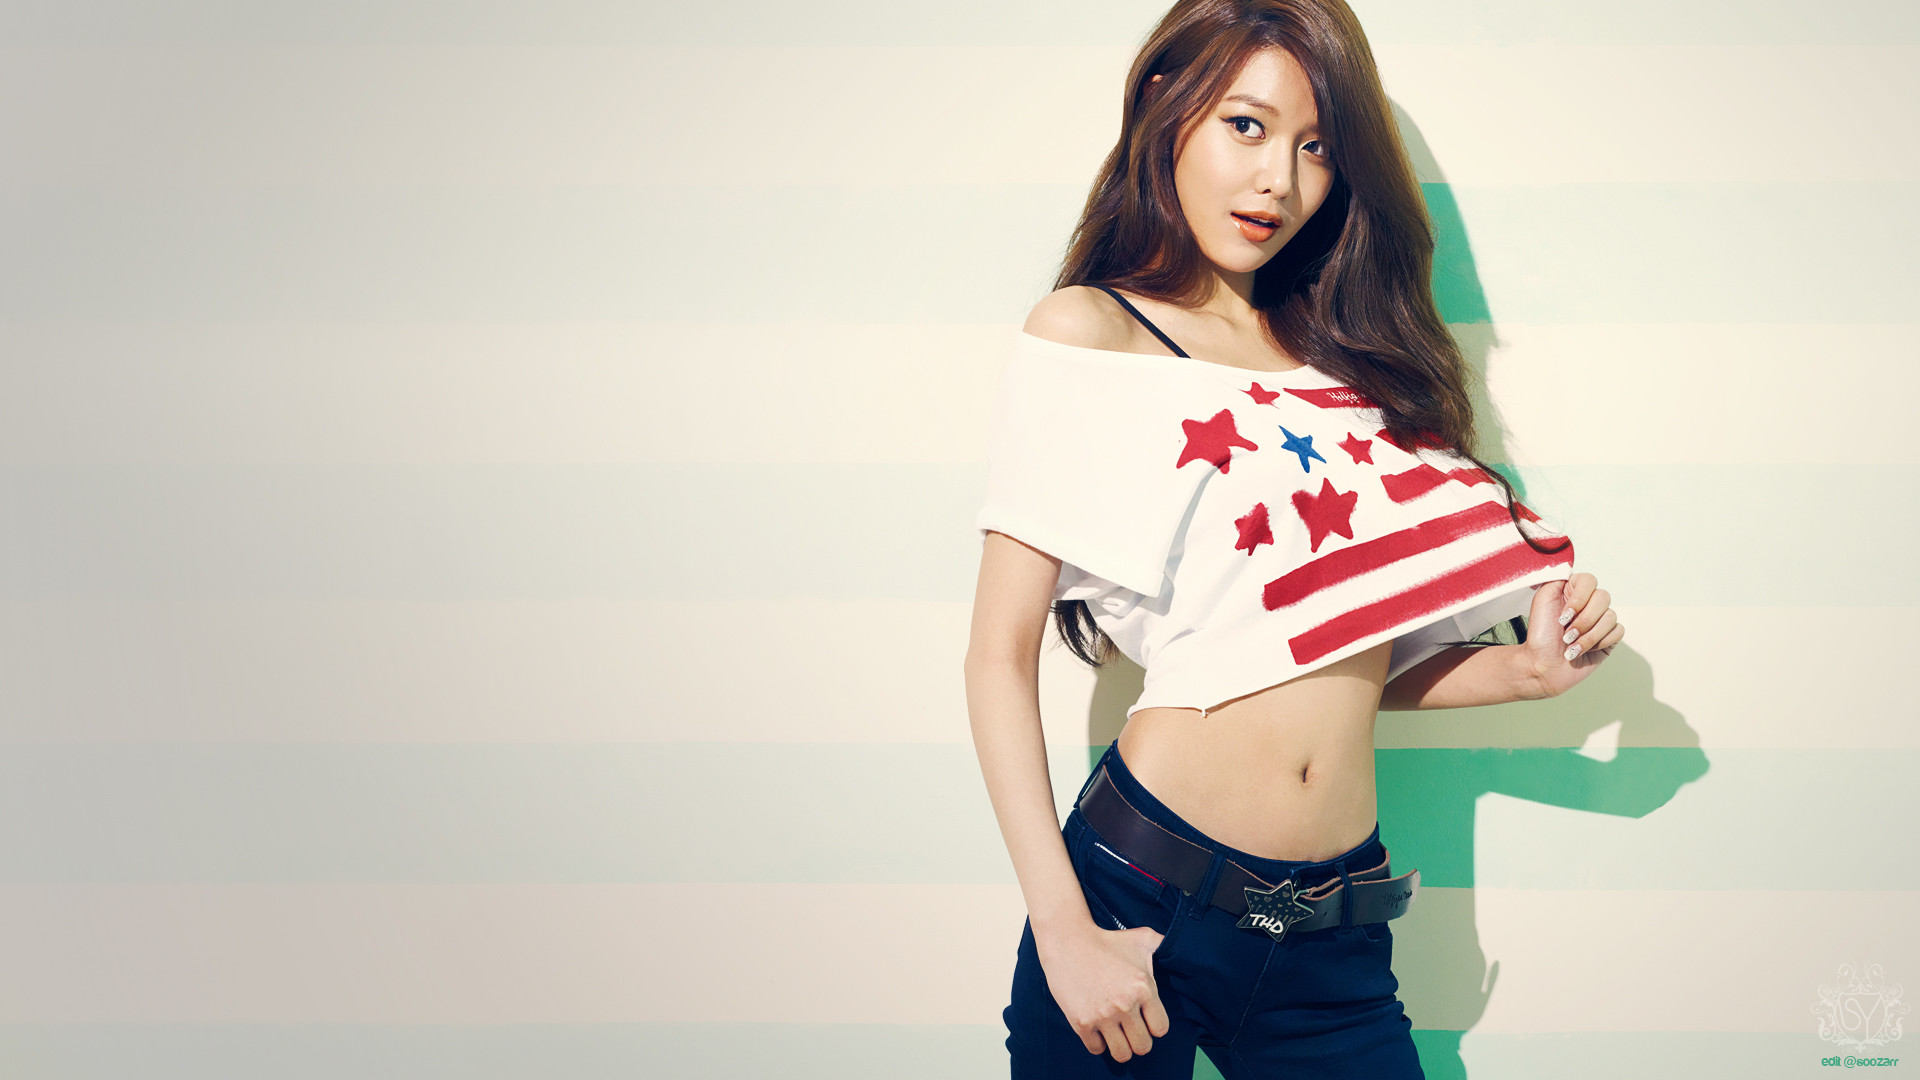 Snsd Sooyoung Wallpaper 82 Images